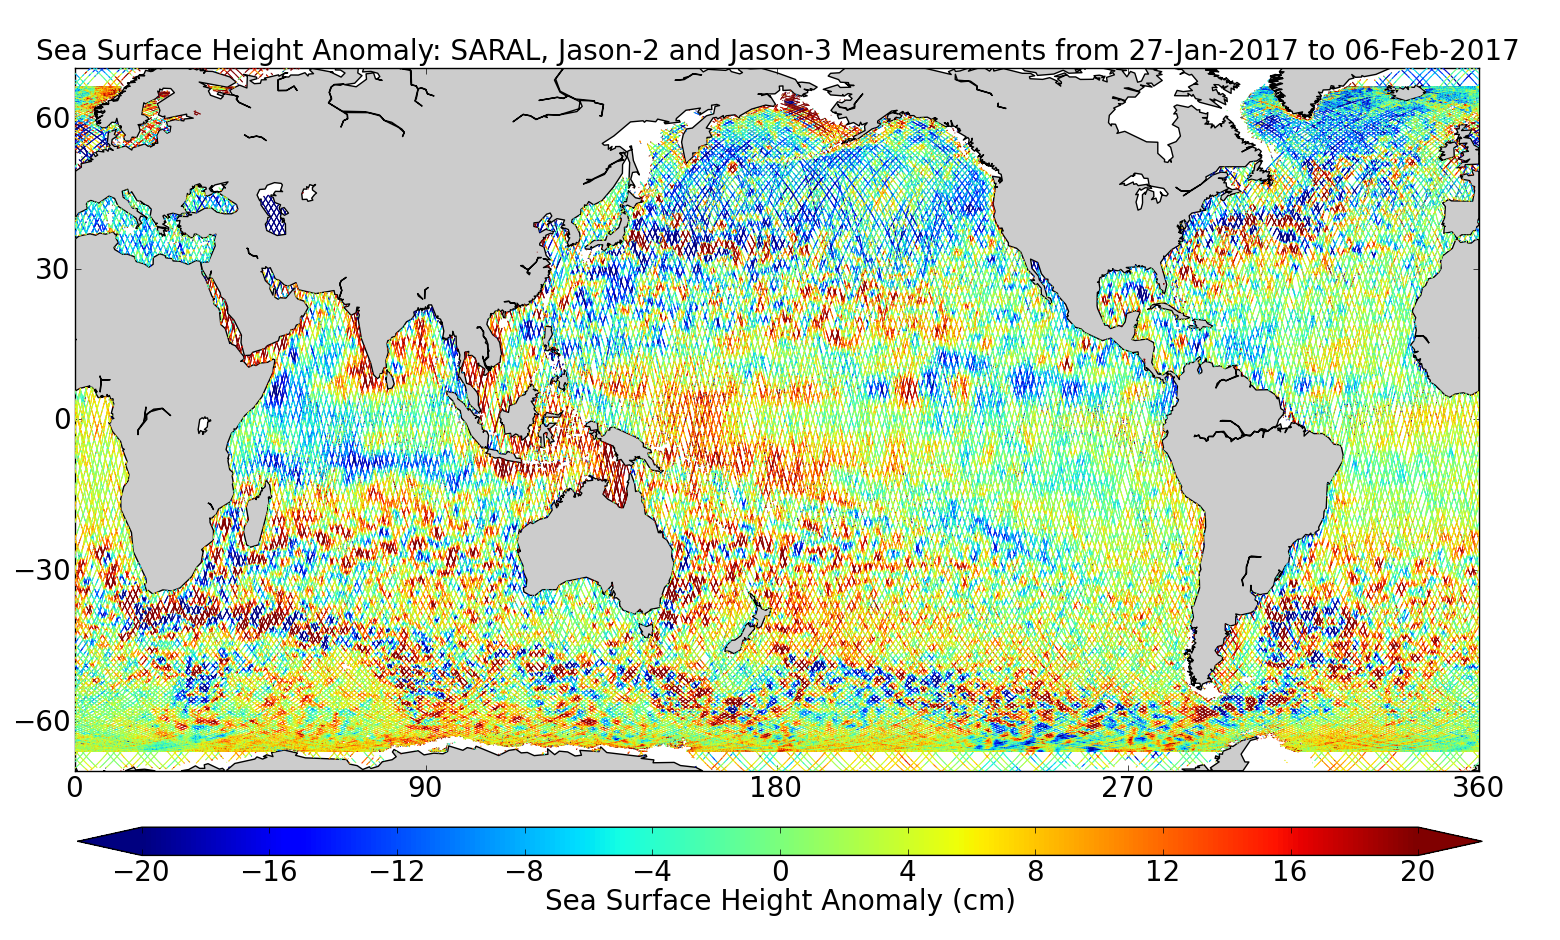 Sea Surface Height Anomaly: SARAL, Jason-2 and Jason-3 Measurements from 27-Jan-2017 to 06-Feb-2017